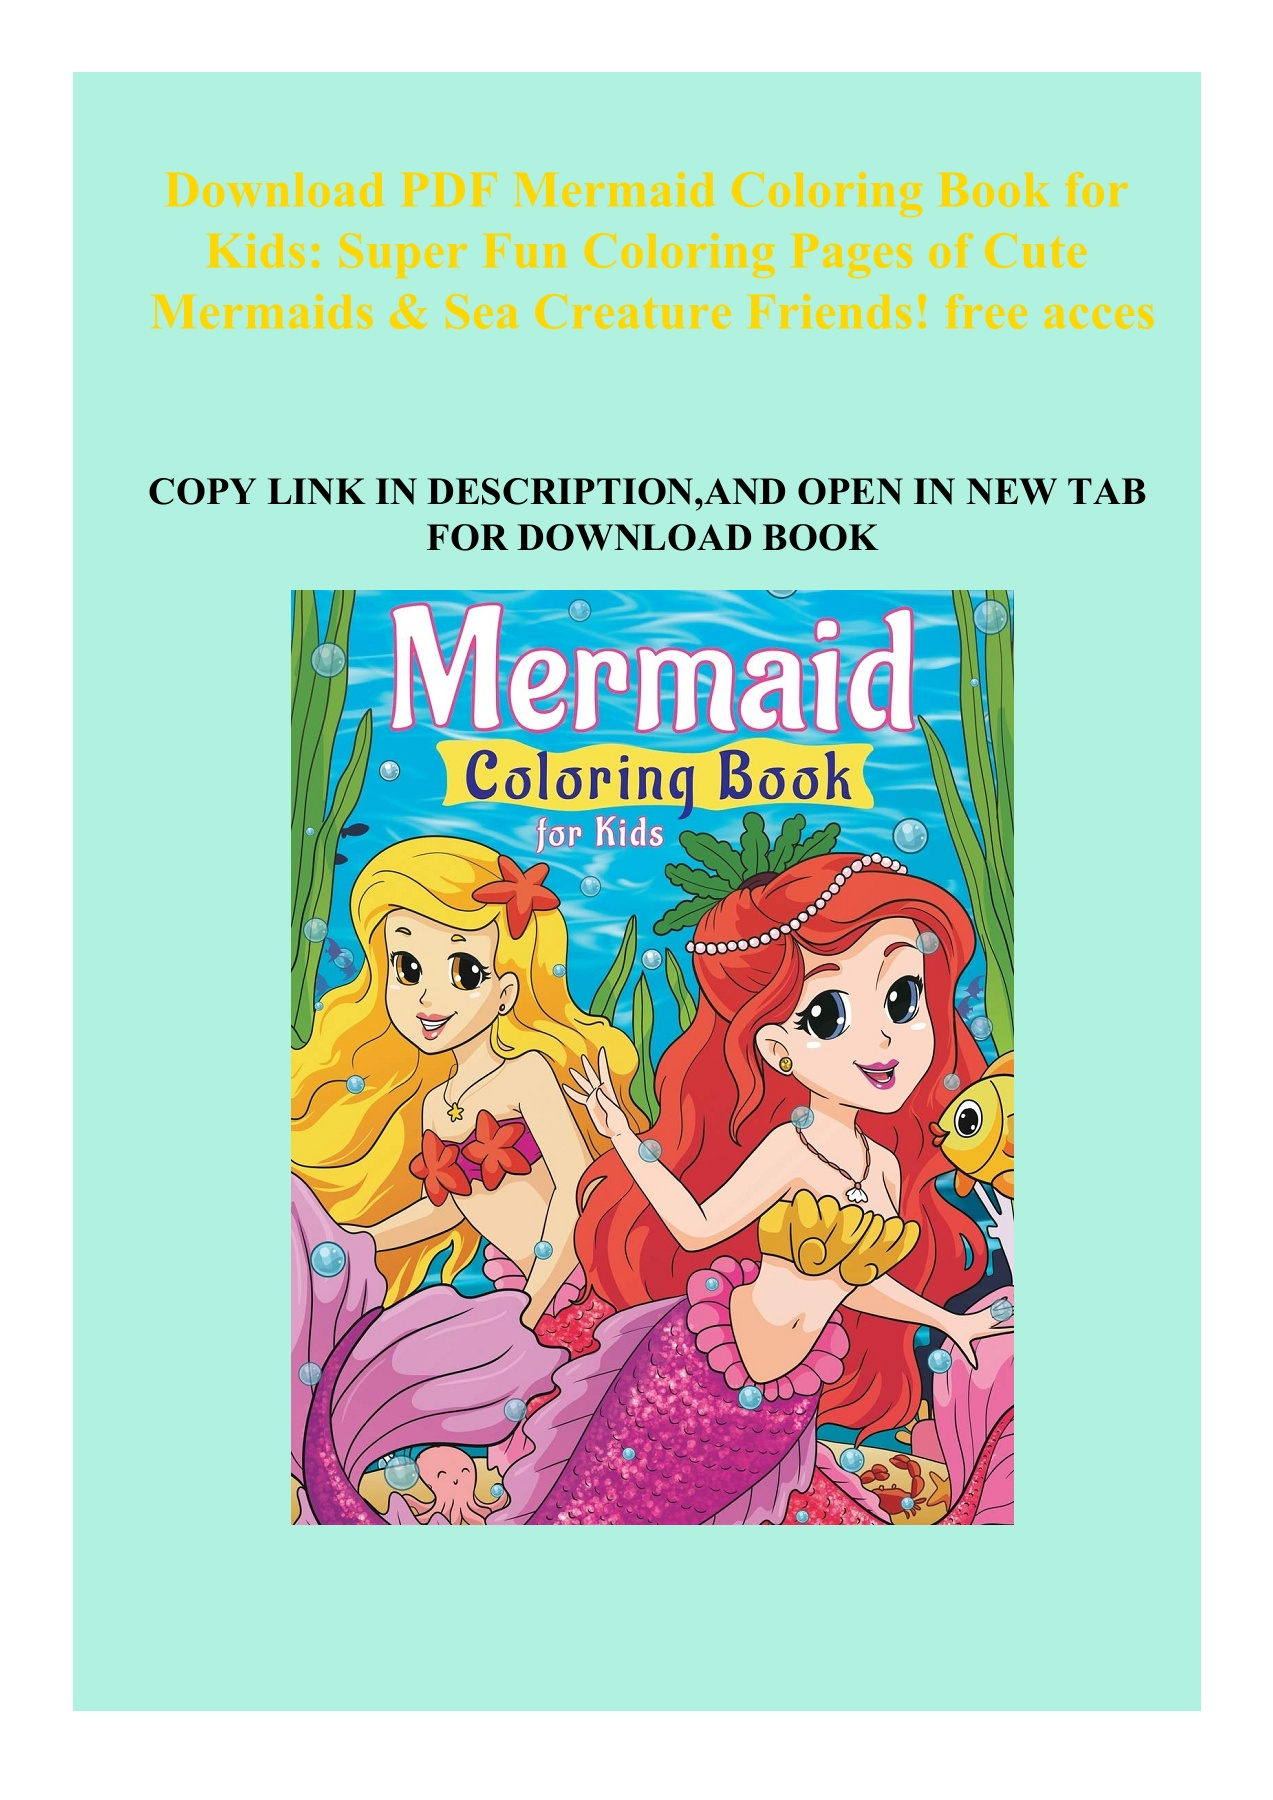 Download Pdf Mermaid Coloring Book For Kids Super Fun Coloring Pages Of Cute Mermaids Sea Creature Friends Free Acces Flip Ebook Pages 1 2 Anyflip Anyflip